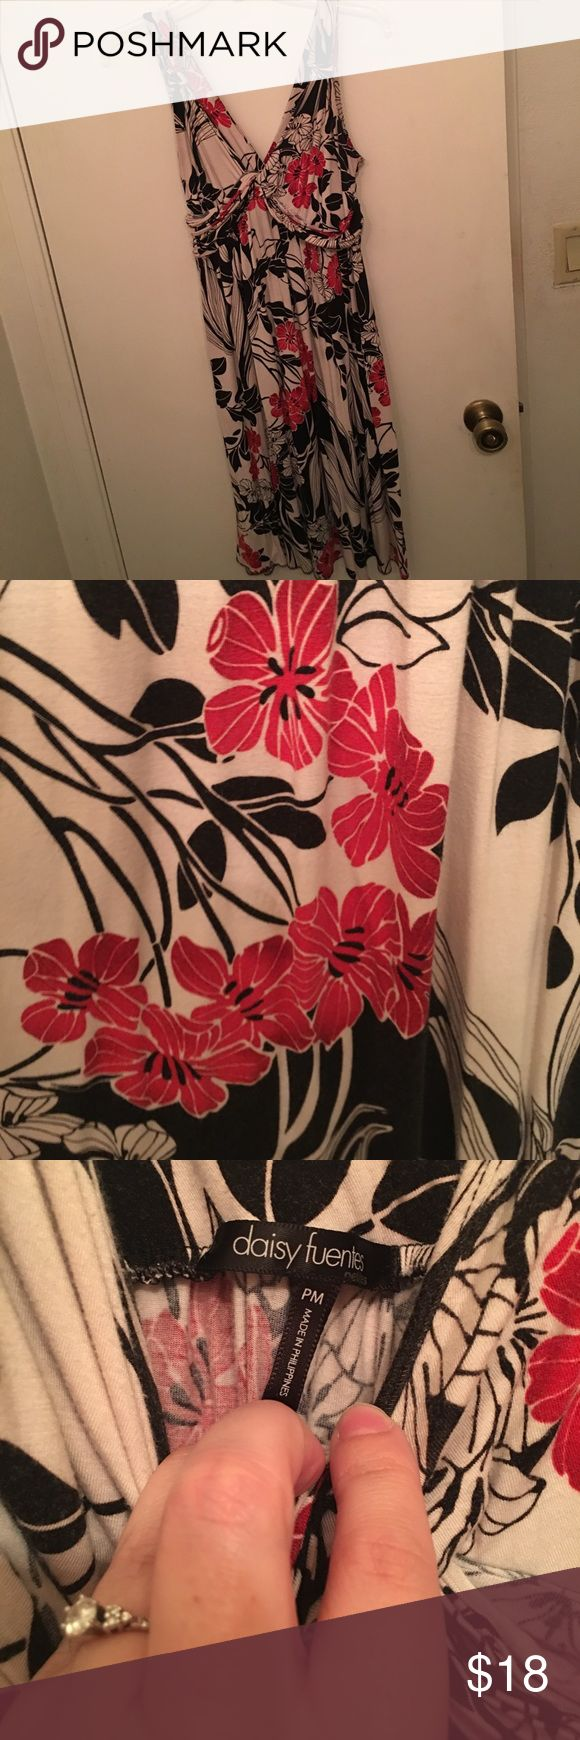 🌺Beautiful Hawaiian style dress🌺 This dress is white with red and black Hawaiian floral print. This dress flows beautifully! Daisy Fuentes Dresses Asymmetrical